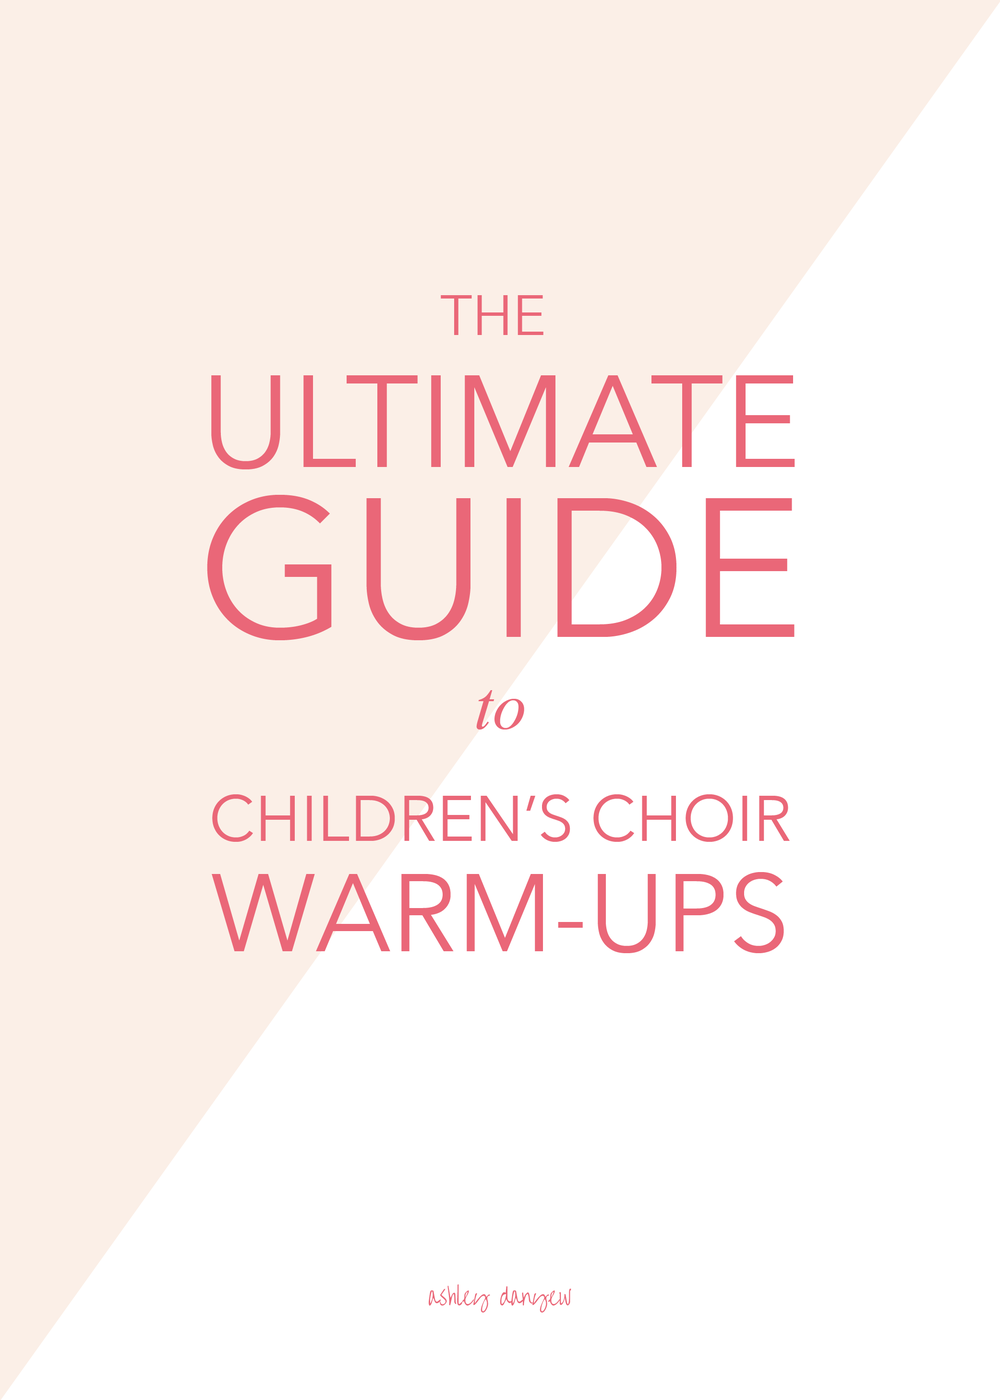 The-Ultimate-Guide-to-Childrens-Choir-Warm-Ups-01.png